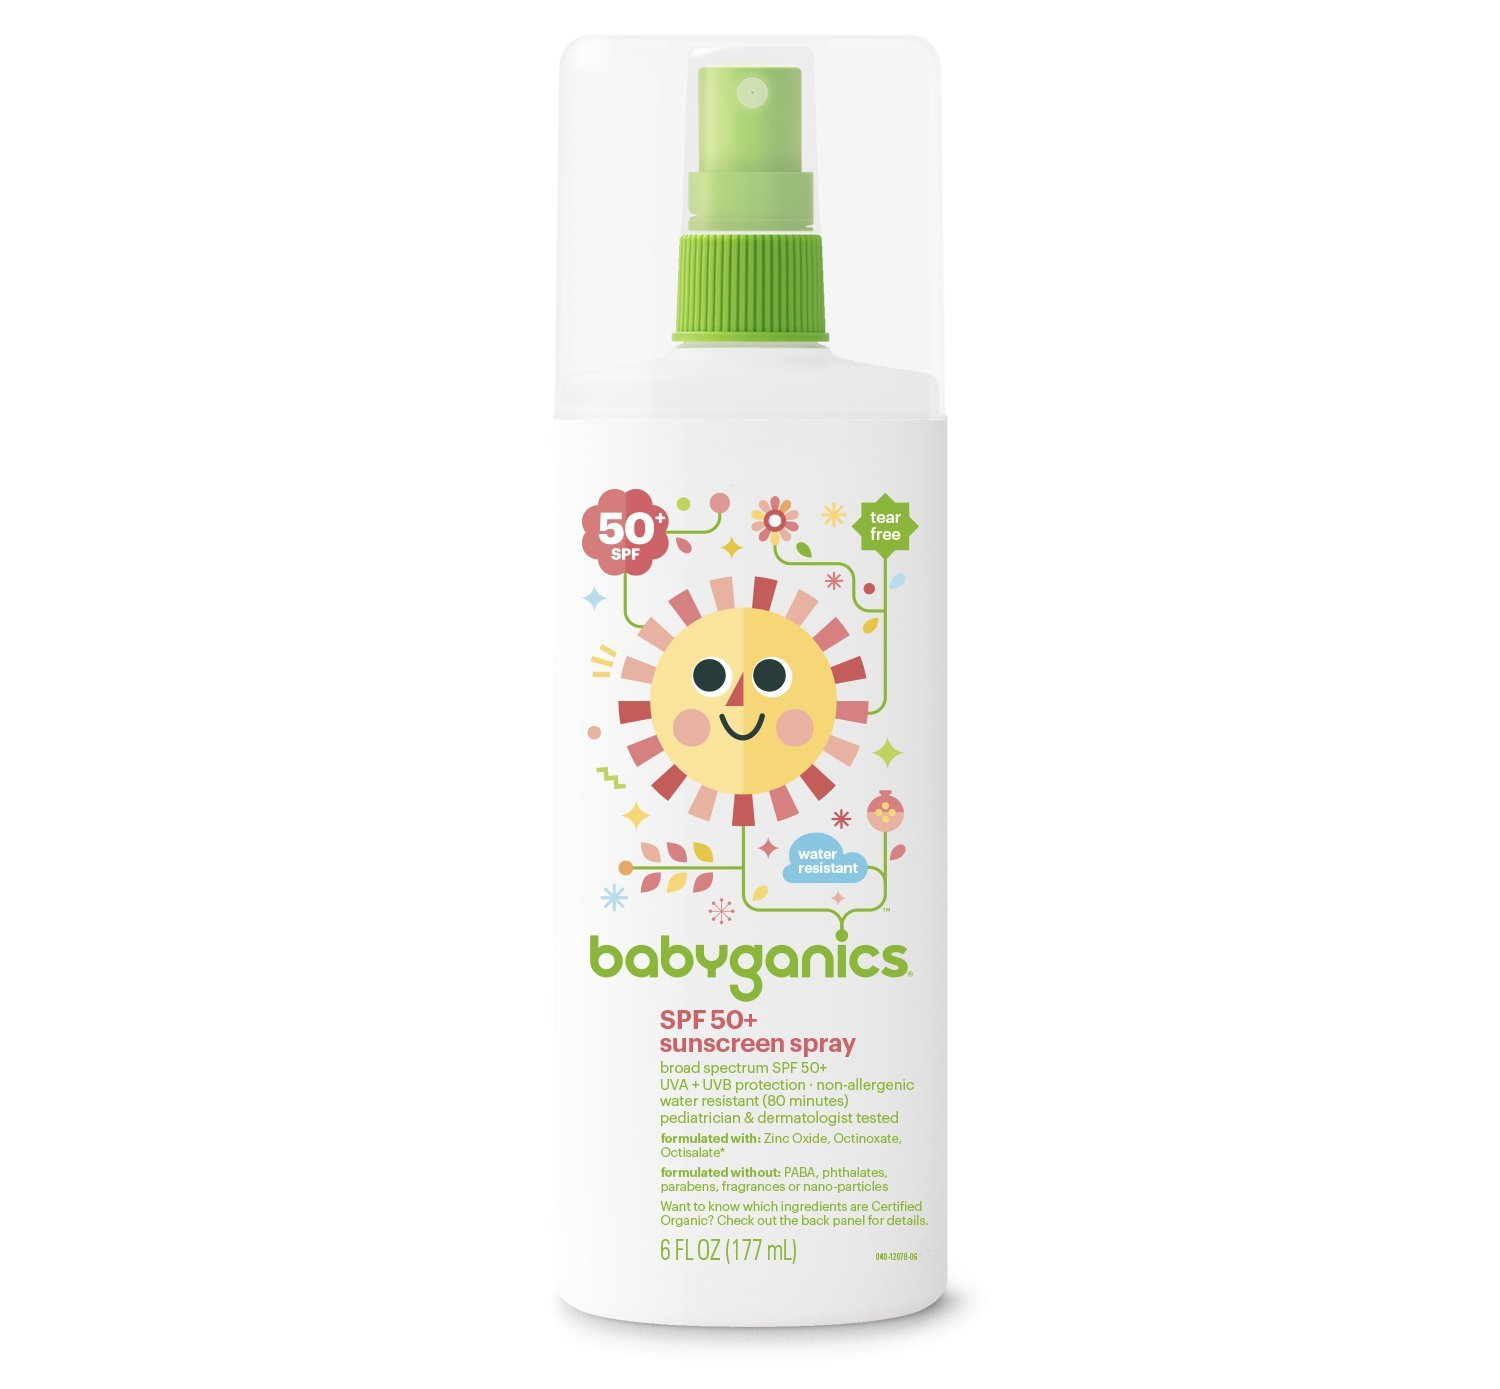 Babyganics SPF 50 Baby Sunscreen Spray